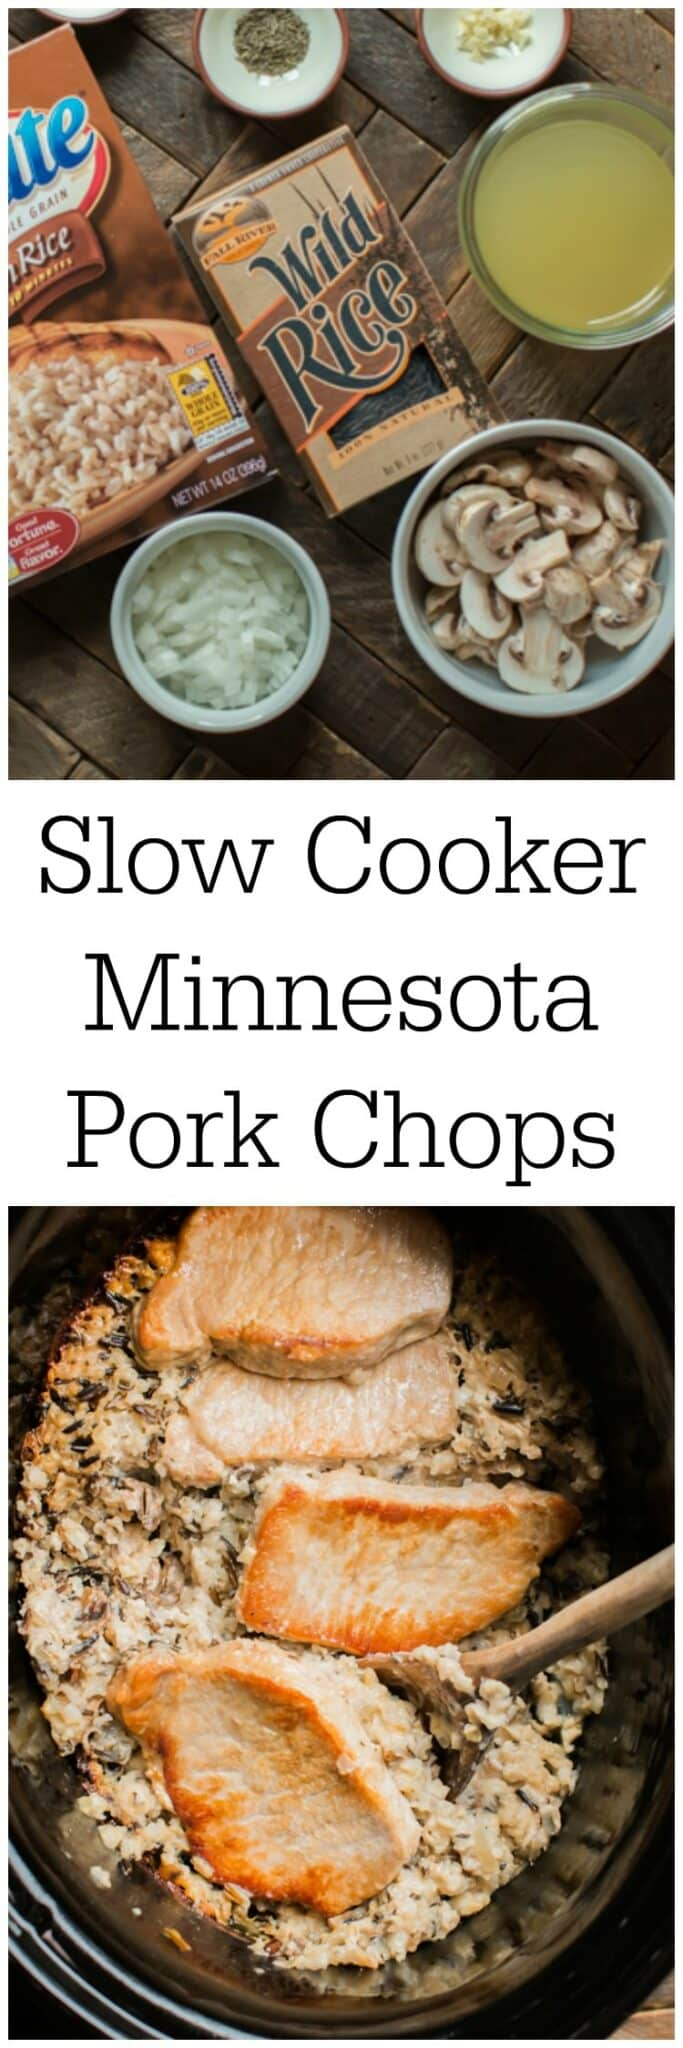 Slow Cooker Minnesota Pork Chops